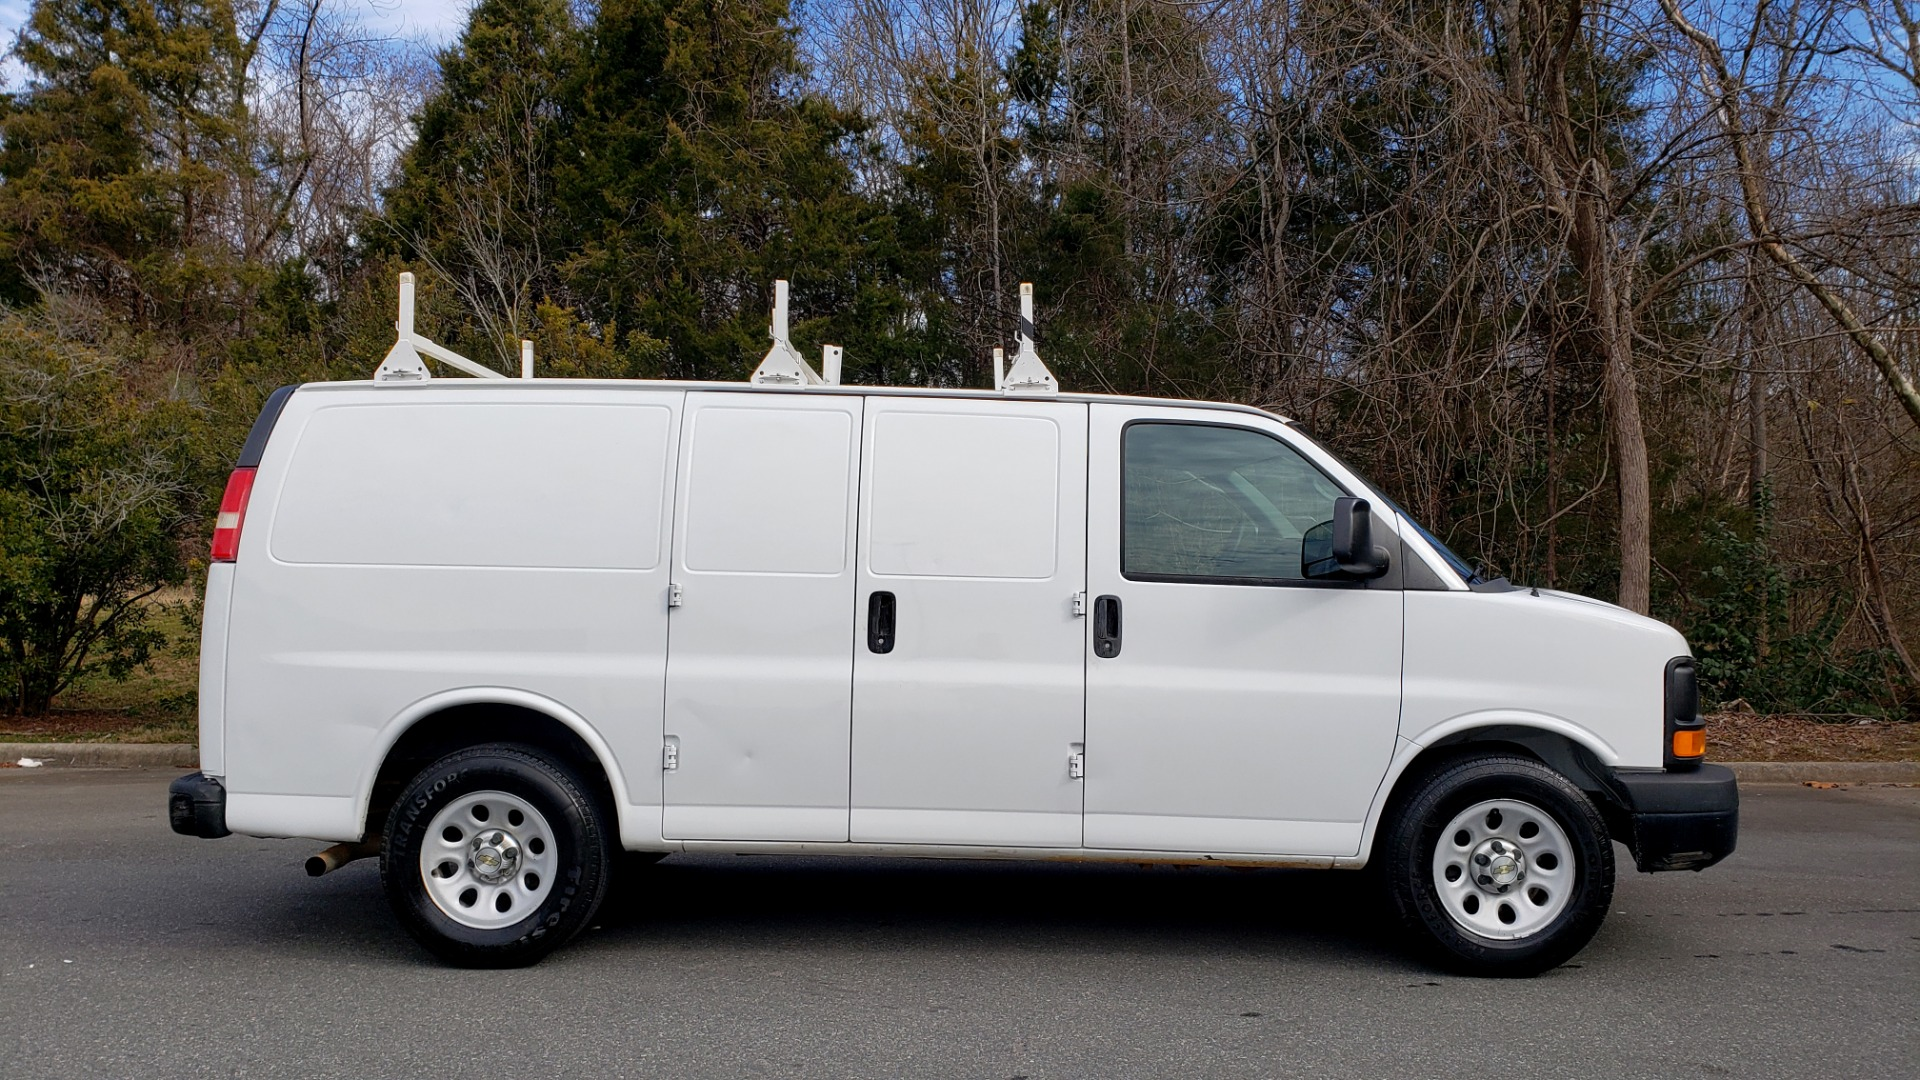 Used 2012 Chevrolet EXPRESS CARGO VAN 1500 / 135 WB / 4.3L V6 / 4-SPD AUTO / ROOF RACK for sale $10,995 at Formula Imports in Charlotte NC 28227 5